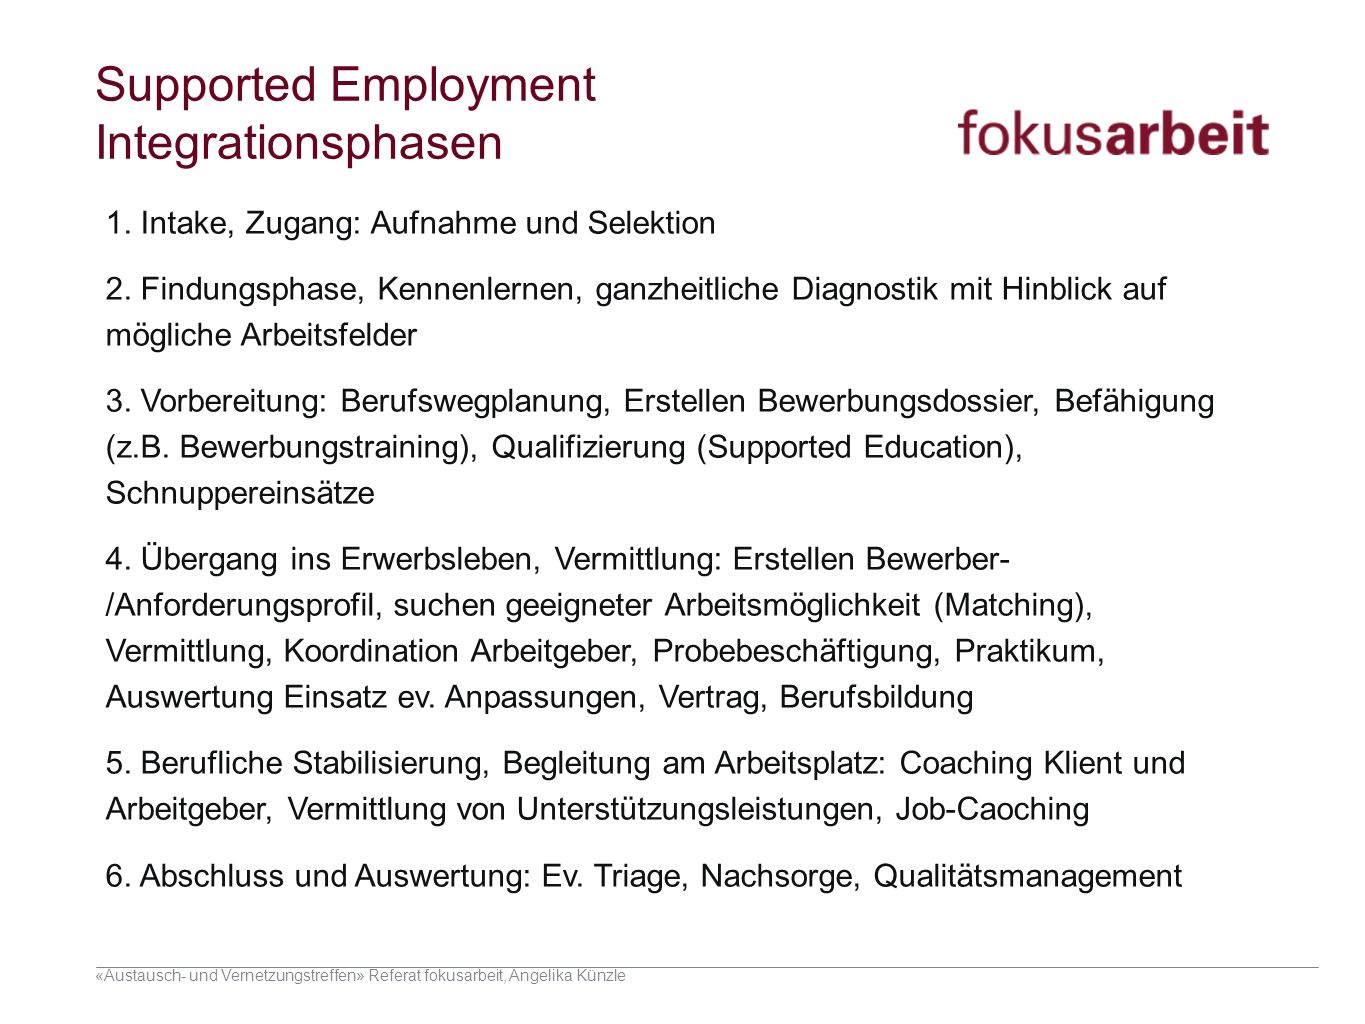 Supported Employment Integrationsphasen